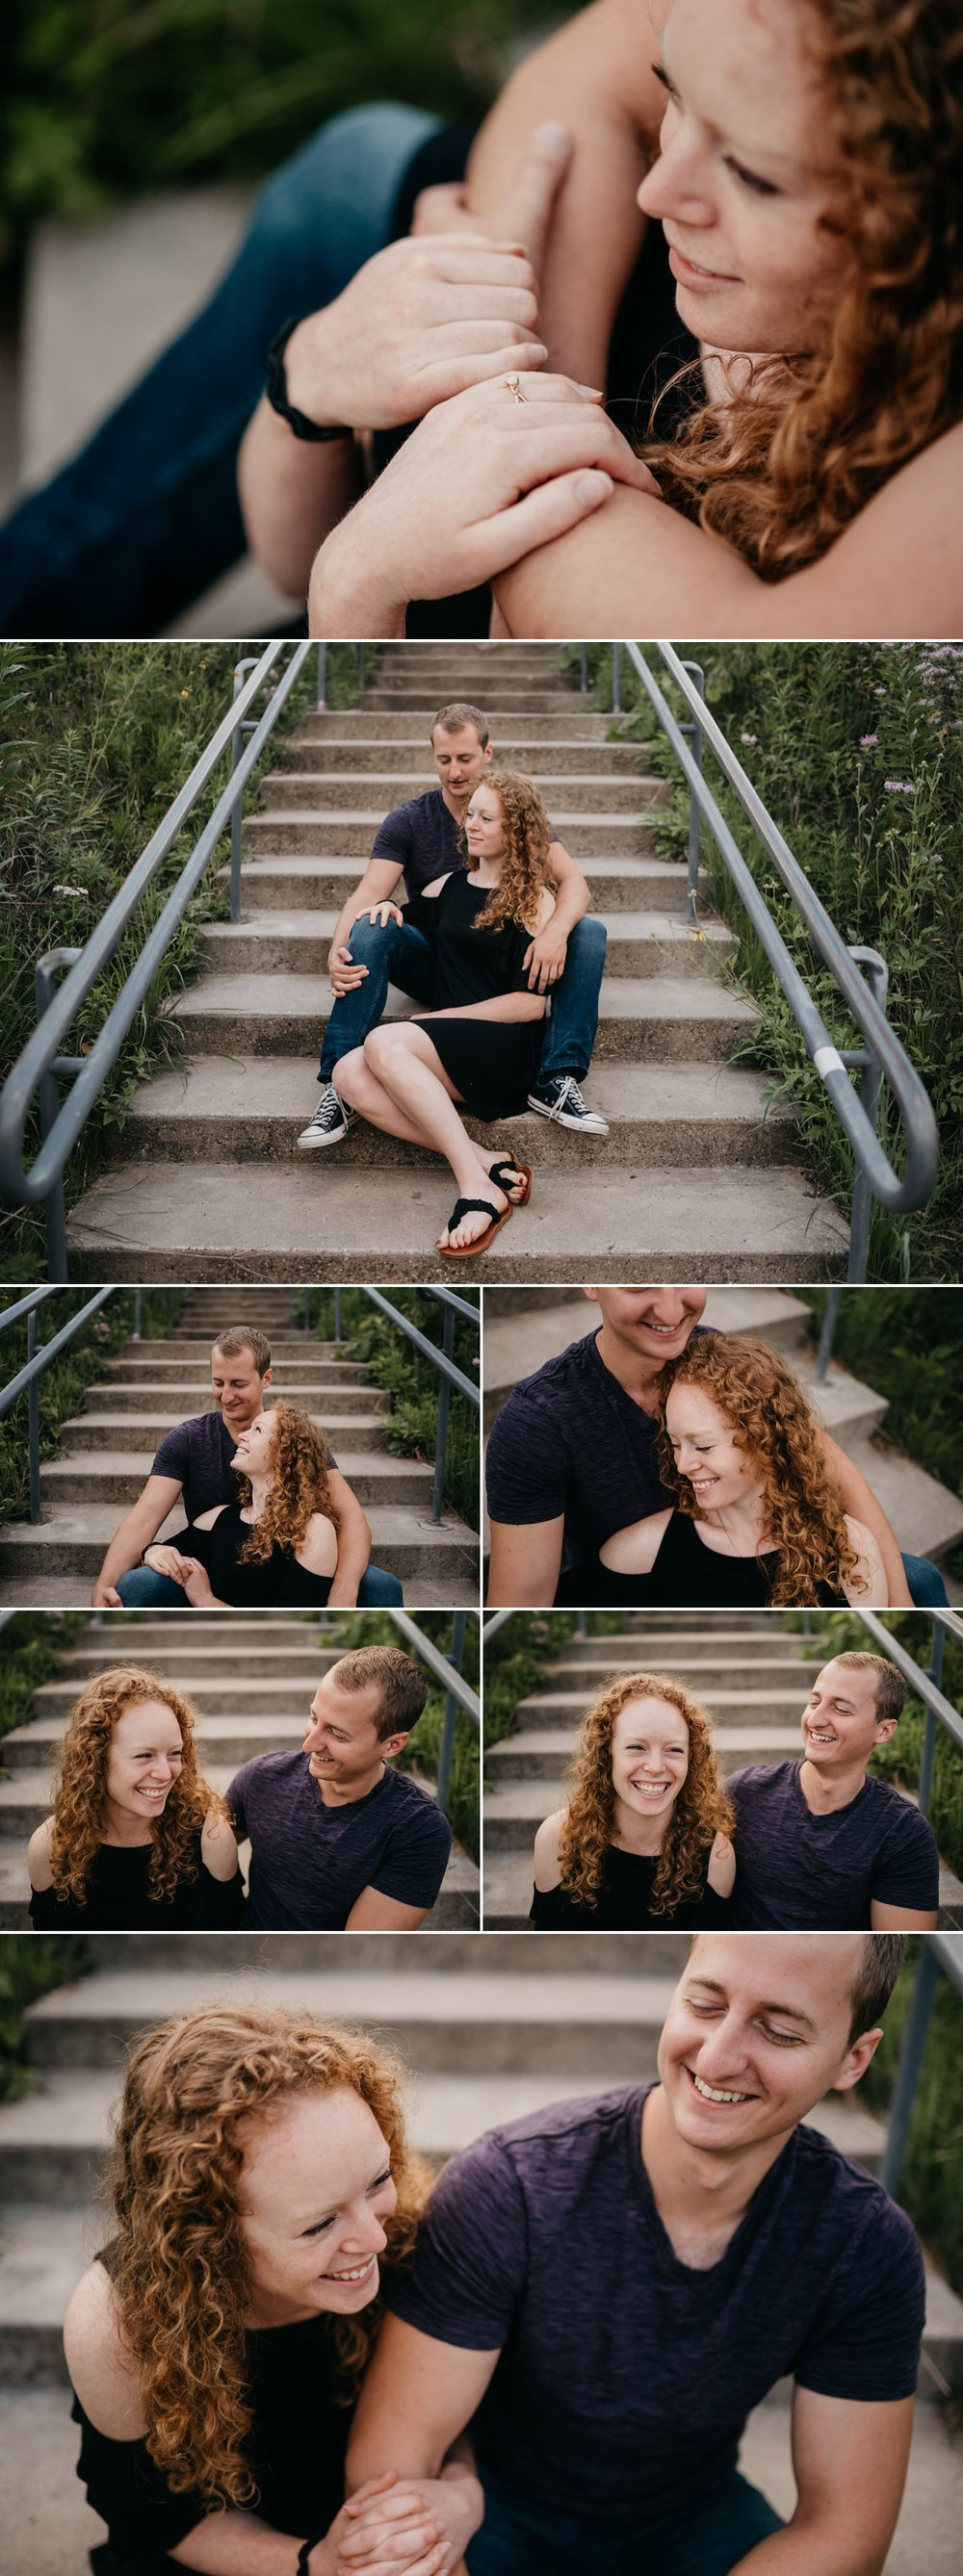 MN Outdoors Engagement Session 5.jpg